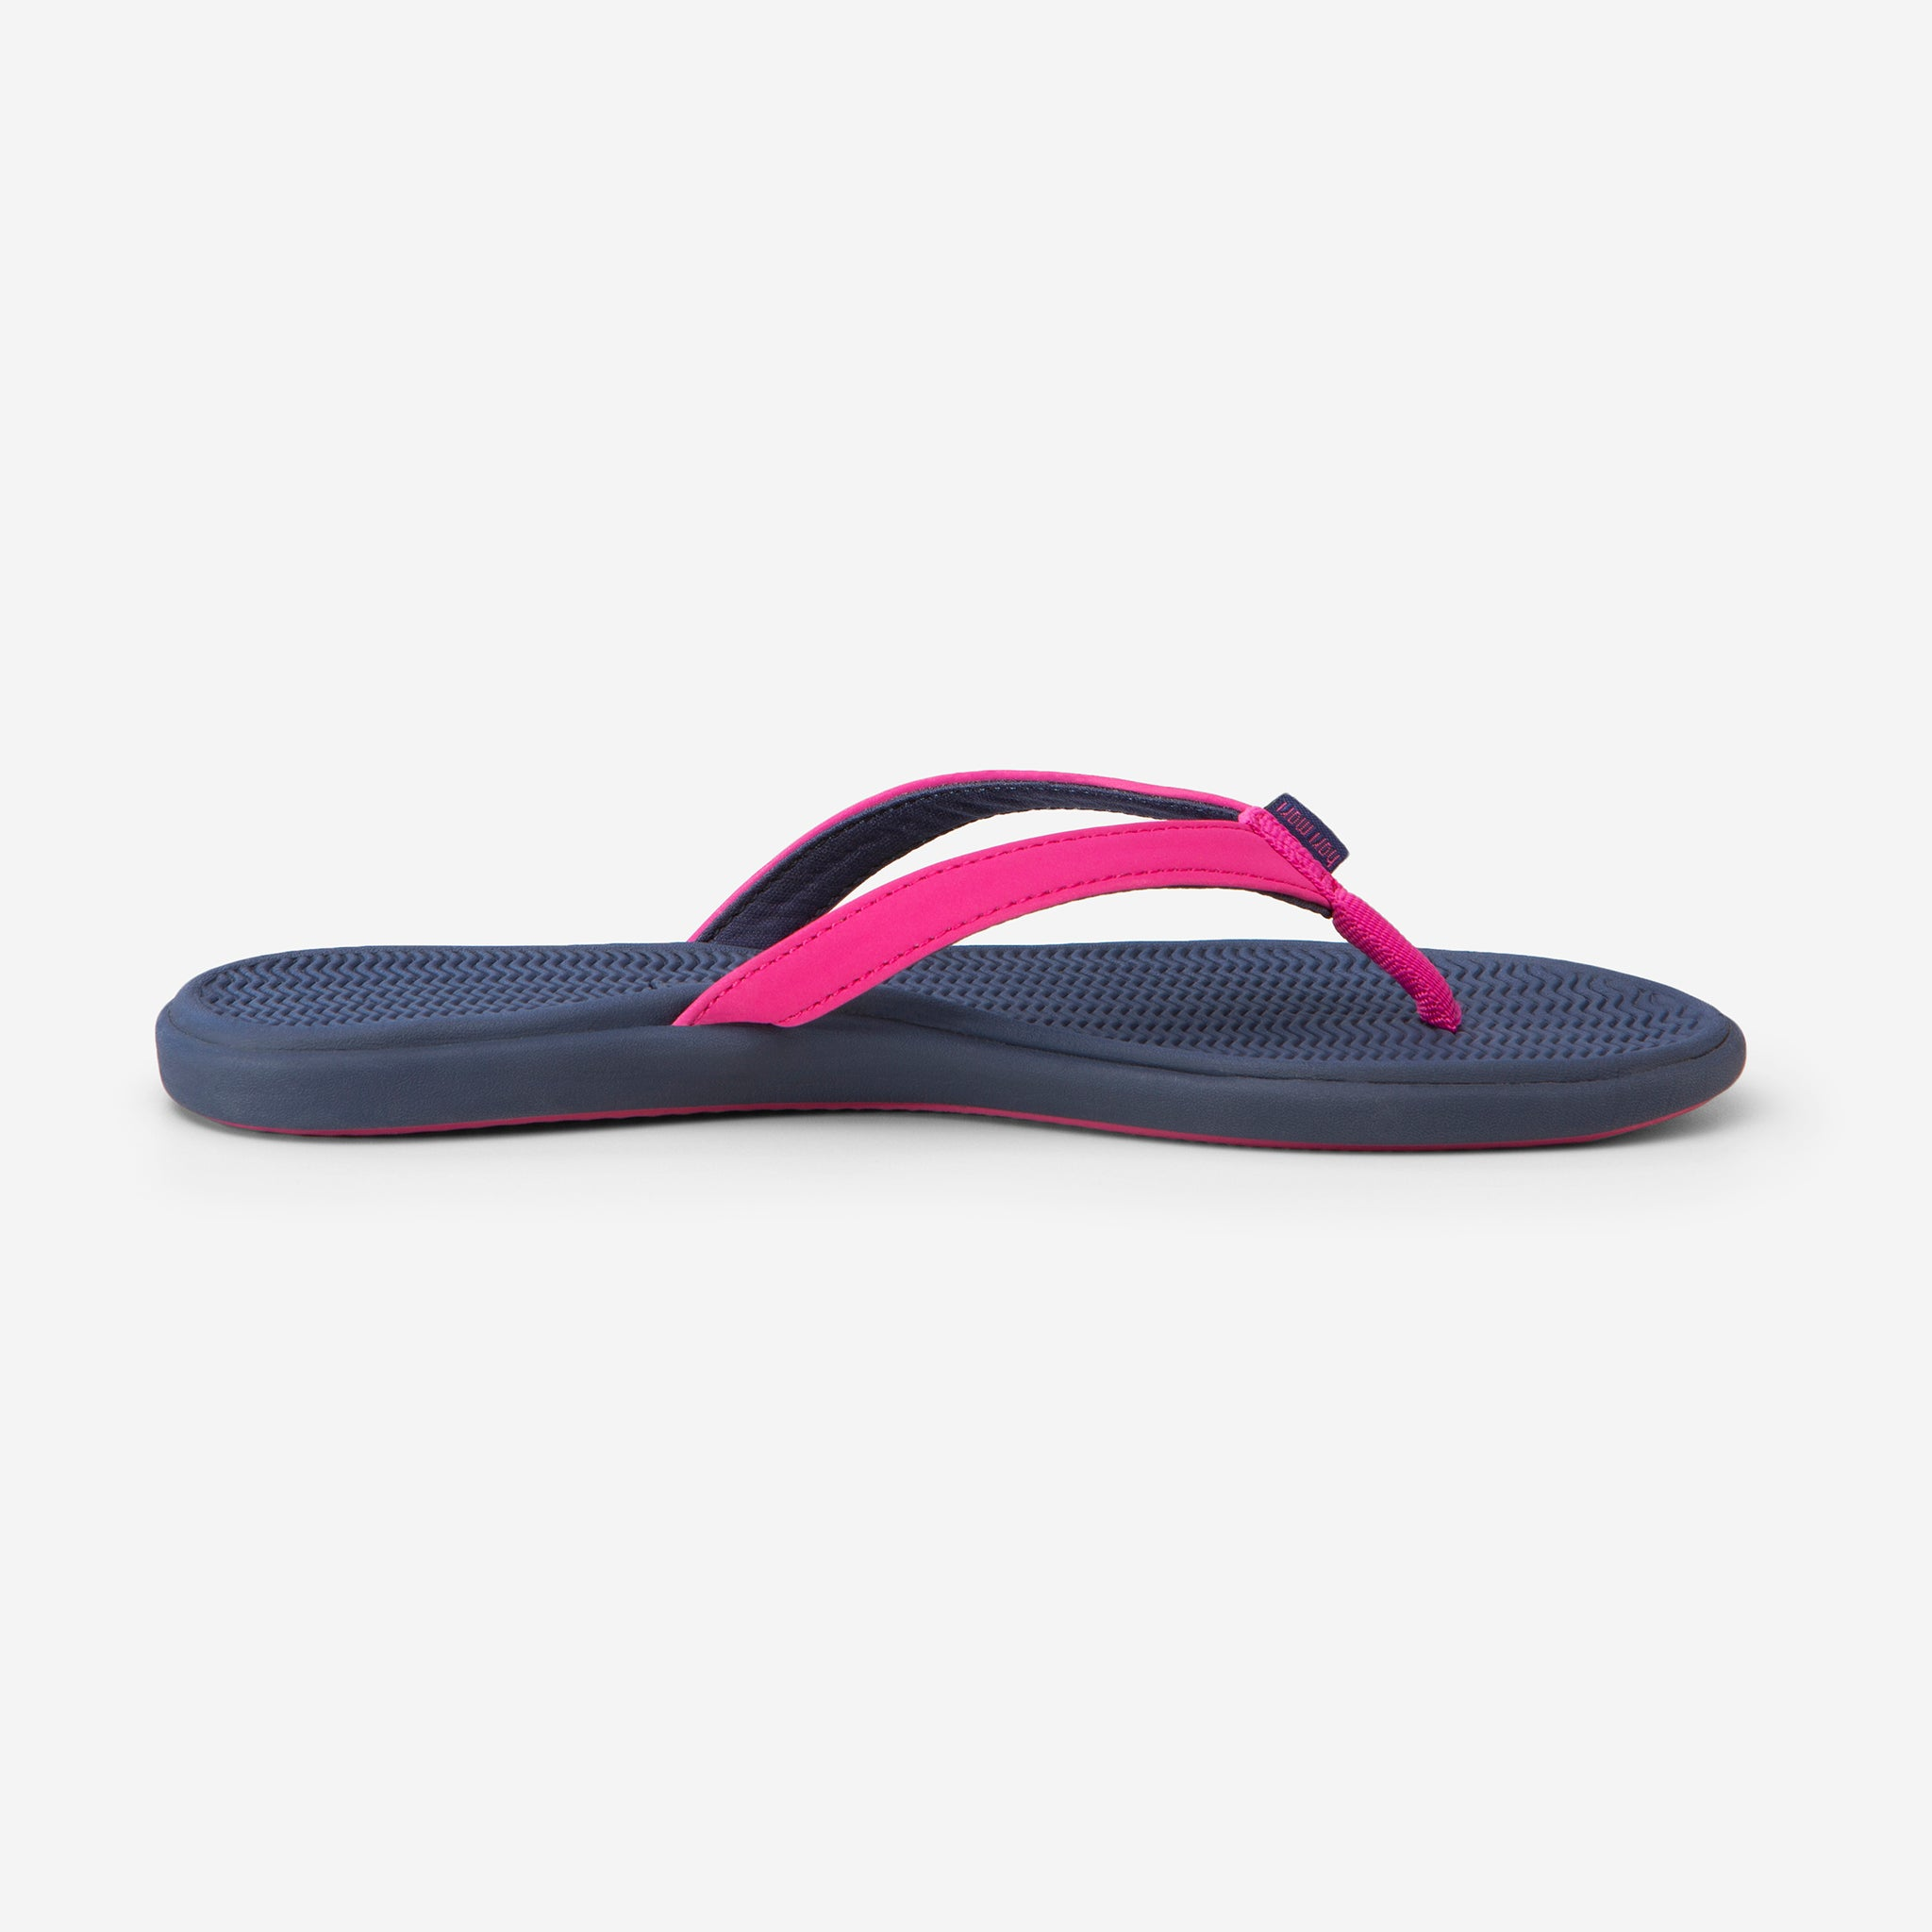 Beachsides - Women's - Berry/Navy - Side View